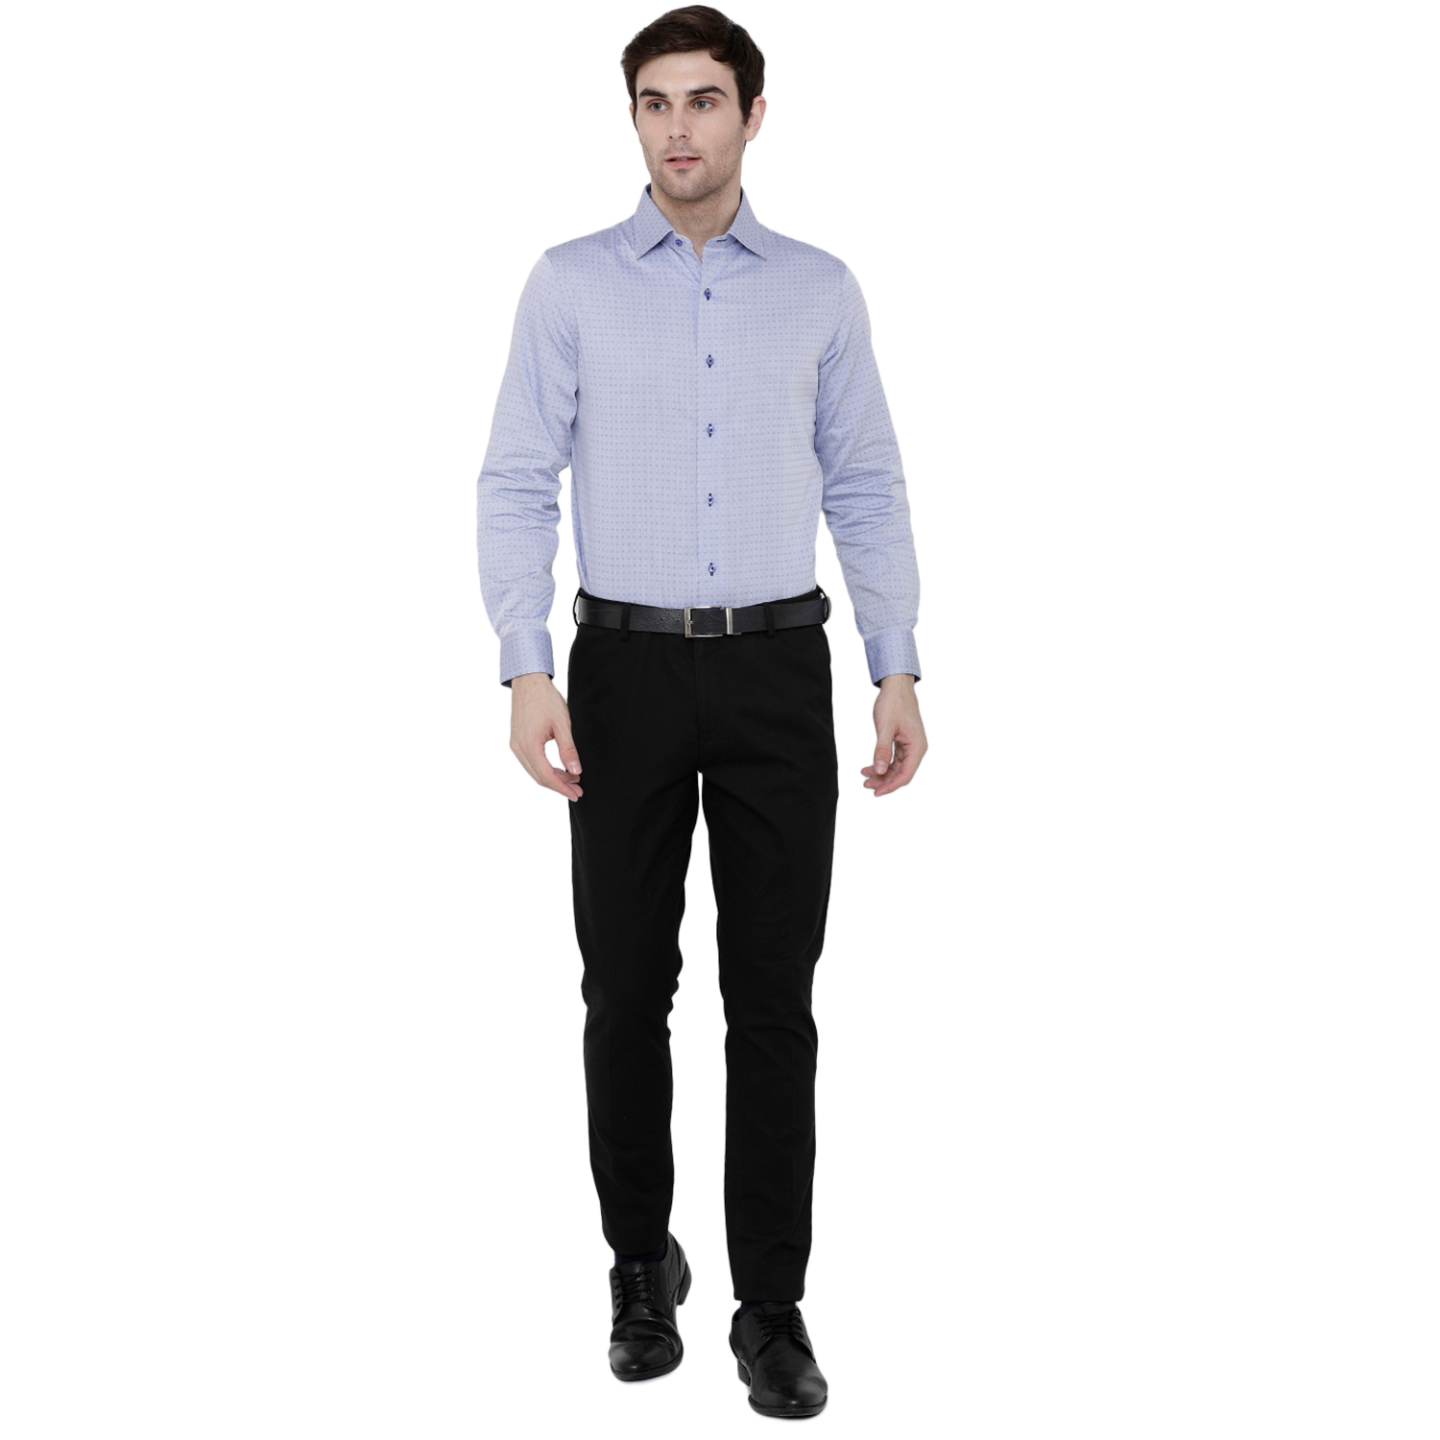 Double TWO Light Blue Dobby Pattern Formal Shirt